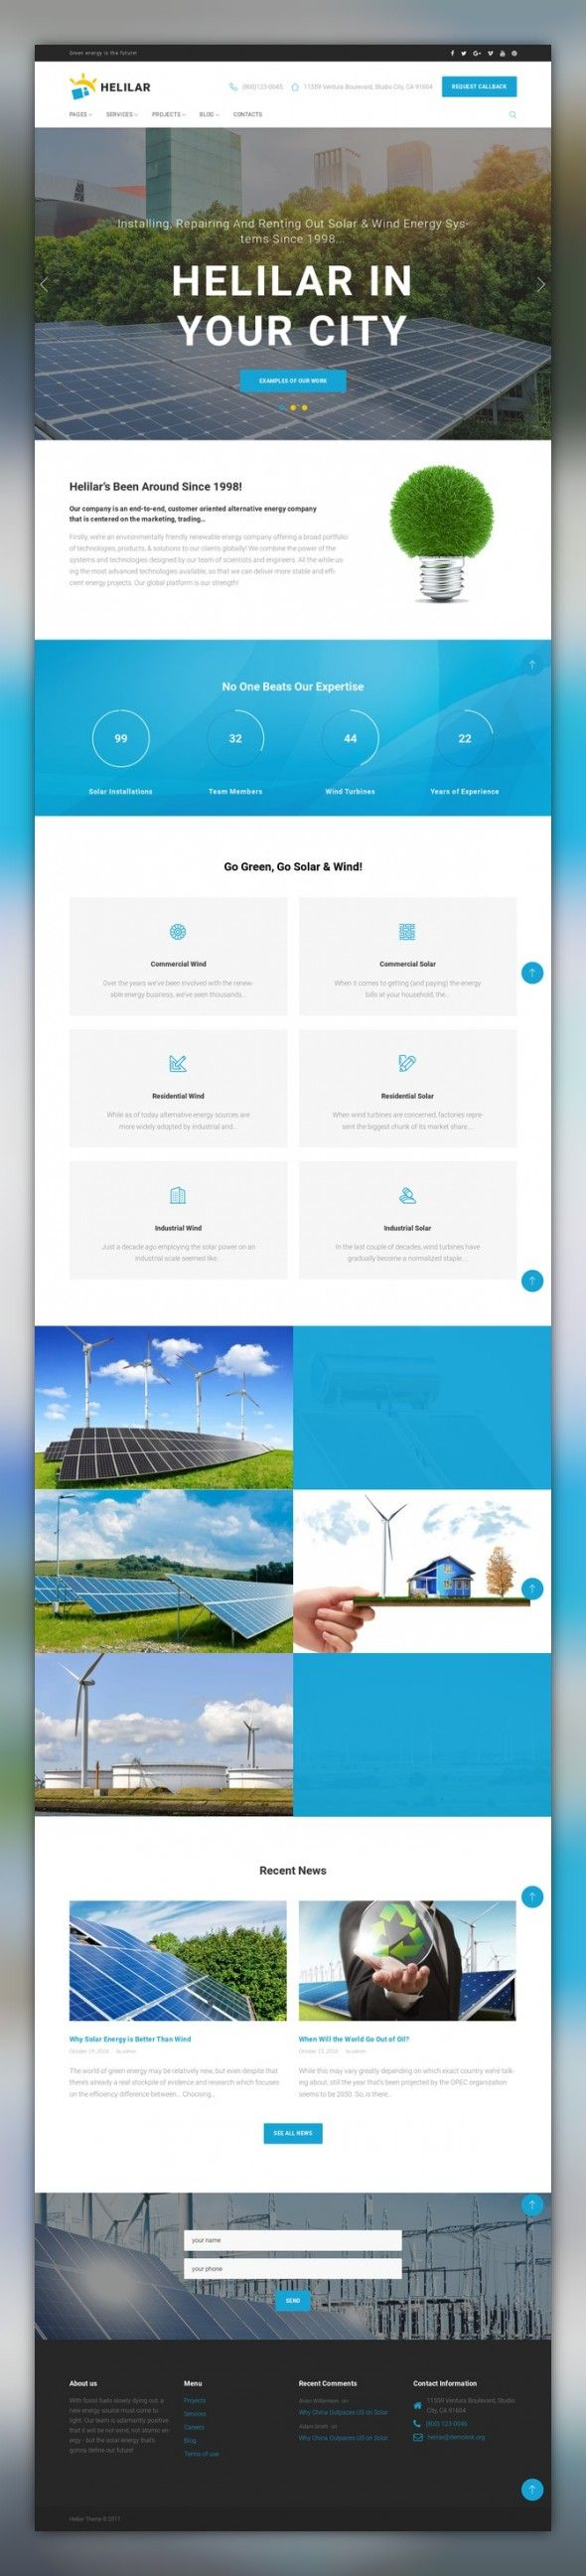 Helilar - Solar & Renewable Energy WordPress Theme CMS & Blog Templates, WordPress Themes, Business & Services, Environmental Templates, Solar Energy Templates Looking for a template that would fit for an impeccable presentation of your renewable energy business? Have a closer look at Solar Energy WP Theme, specially created for eco companies. This SEO-fr...